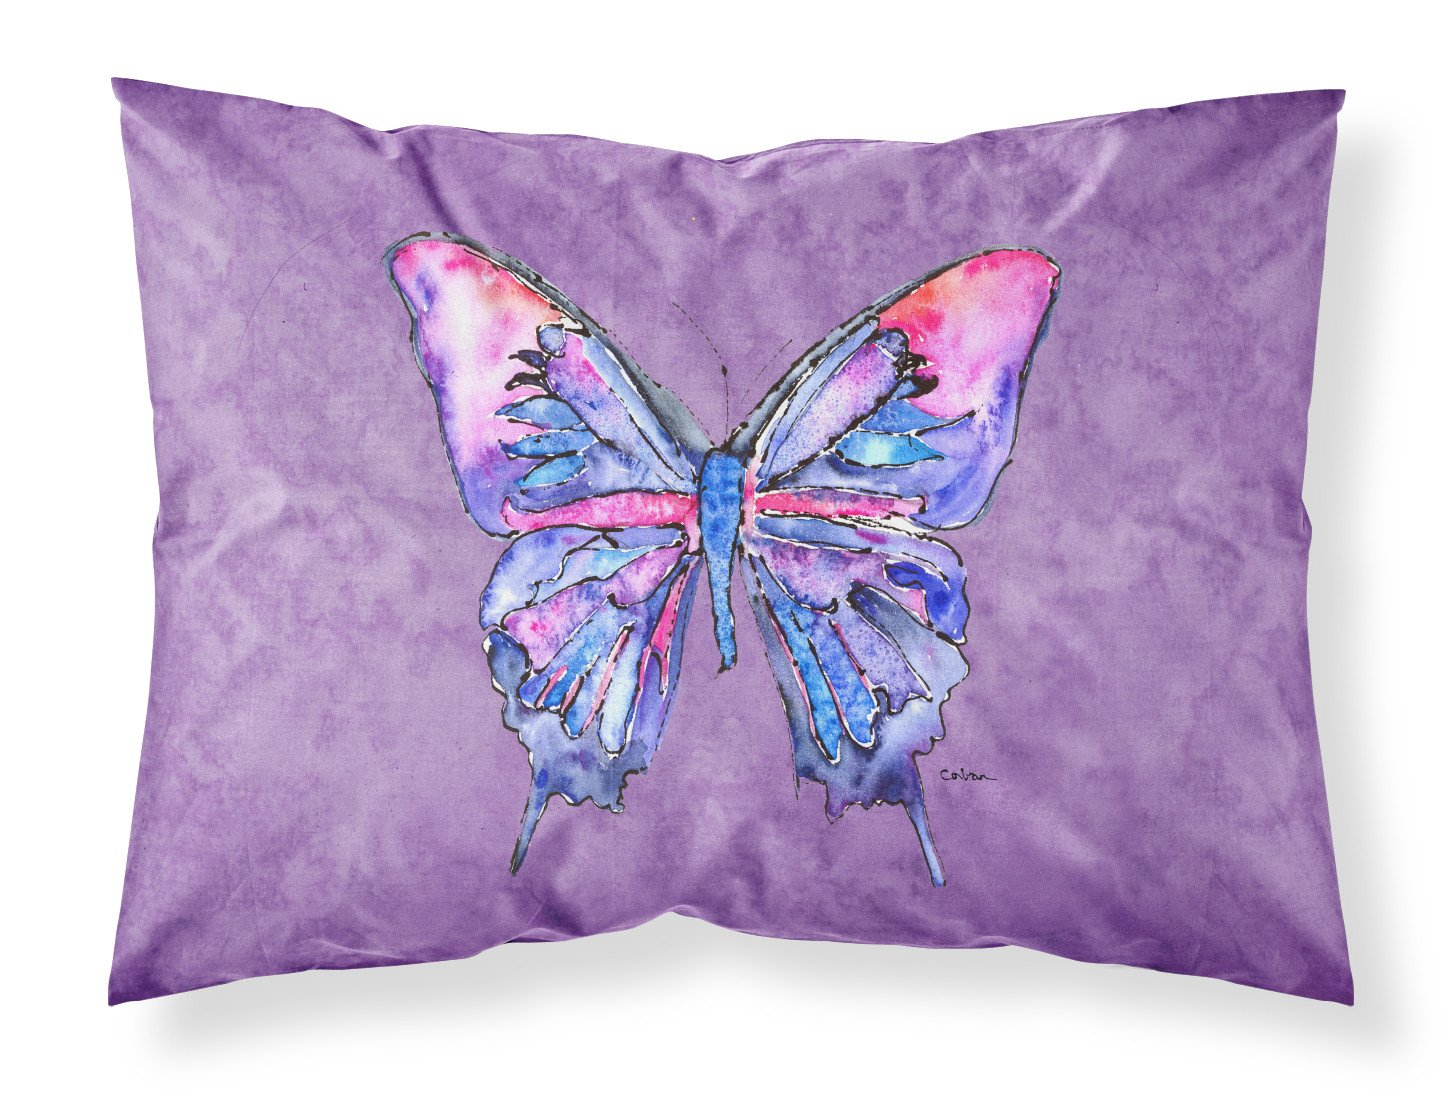 Buy this Butterfly on Purple Moisture wicking Fabric standard pillowcase